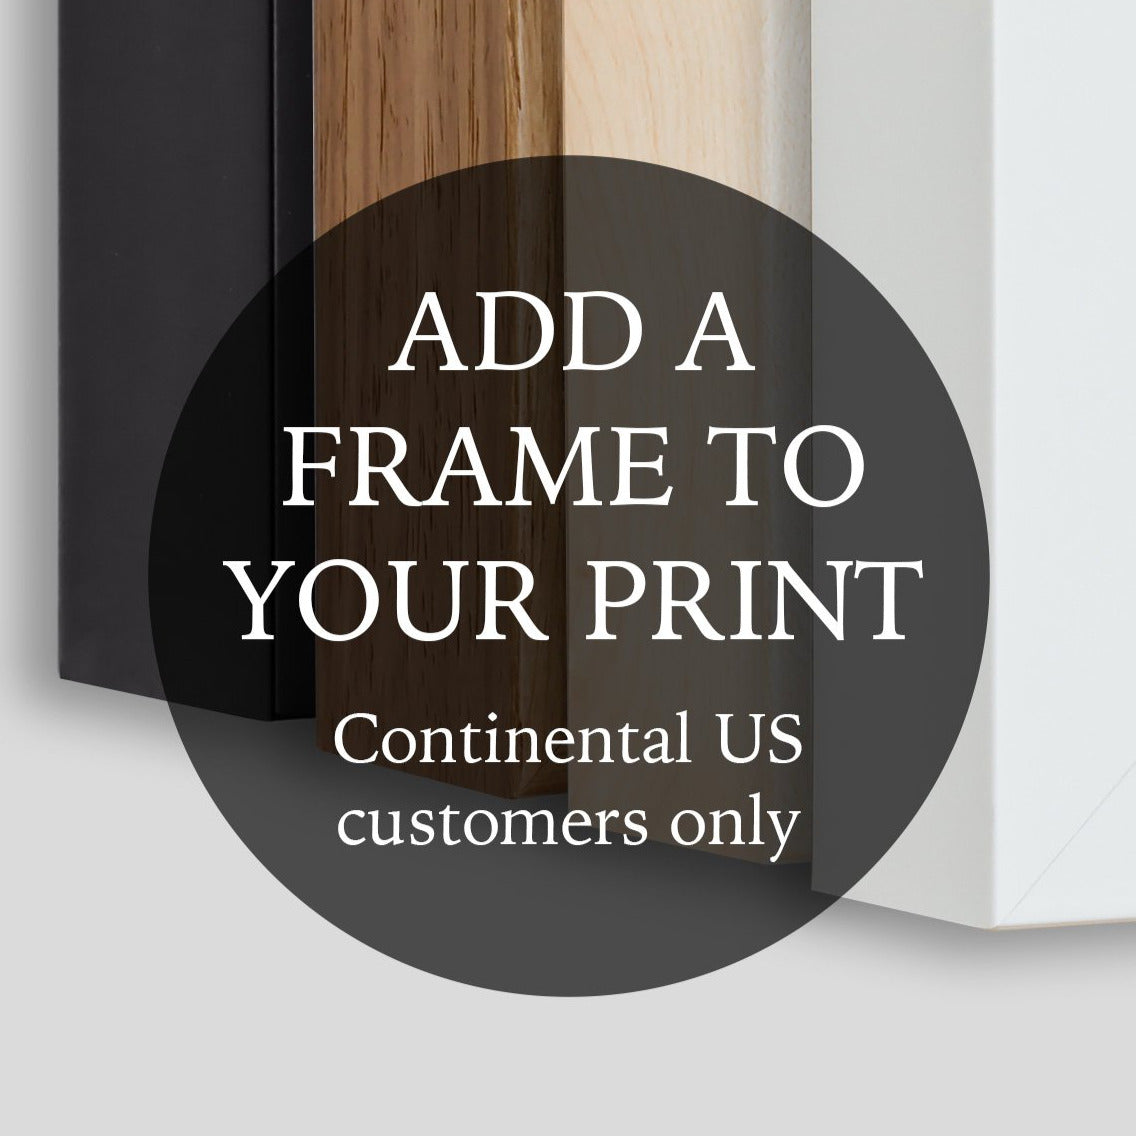 Add A Frame to Your Print - Continental US Only